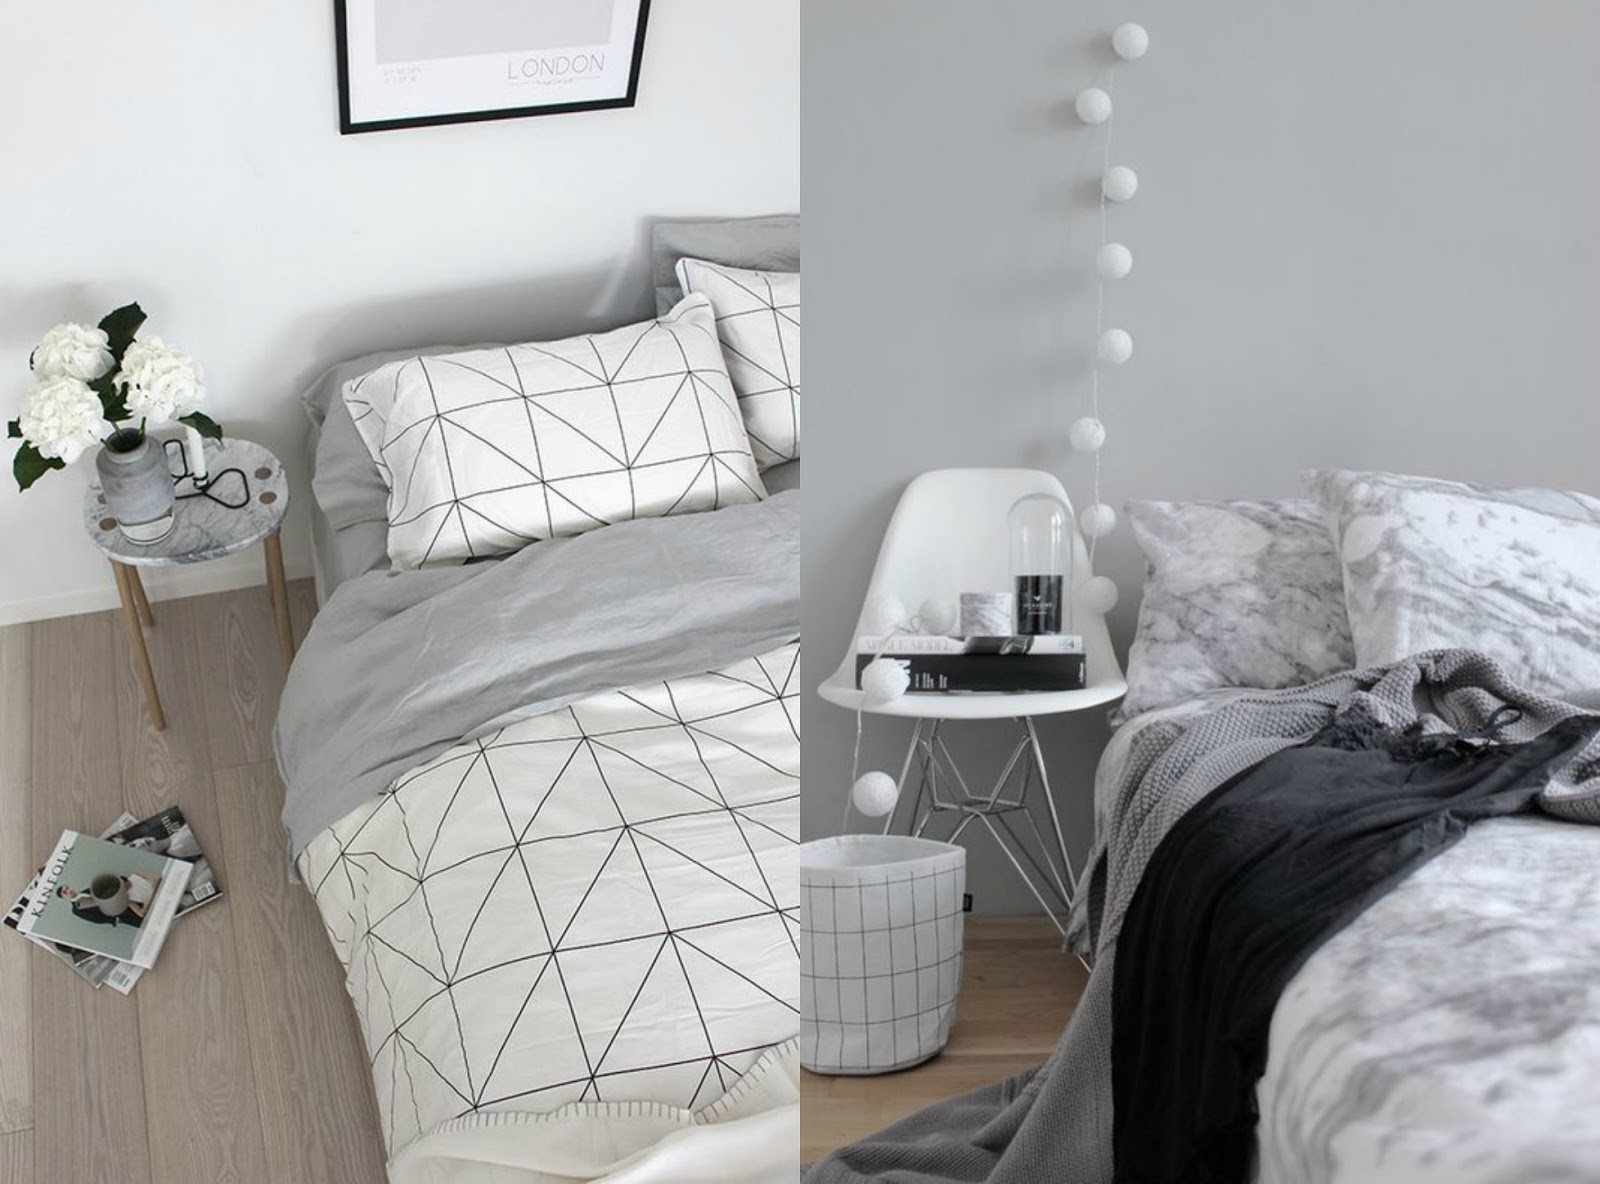 Pinterest Bedroom Inspiration - See The Stars Blog